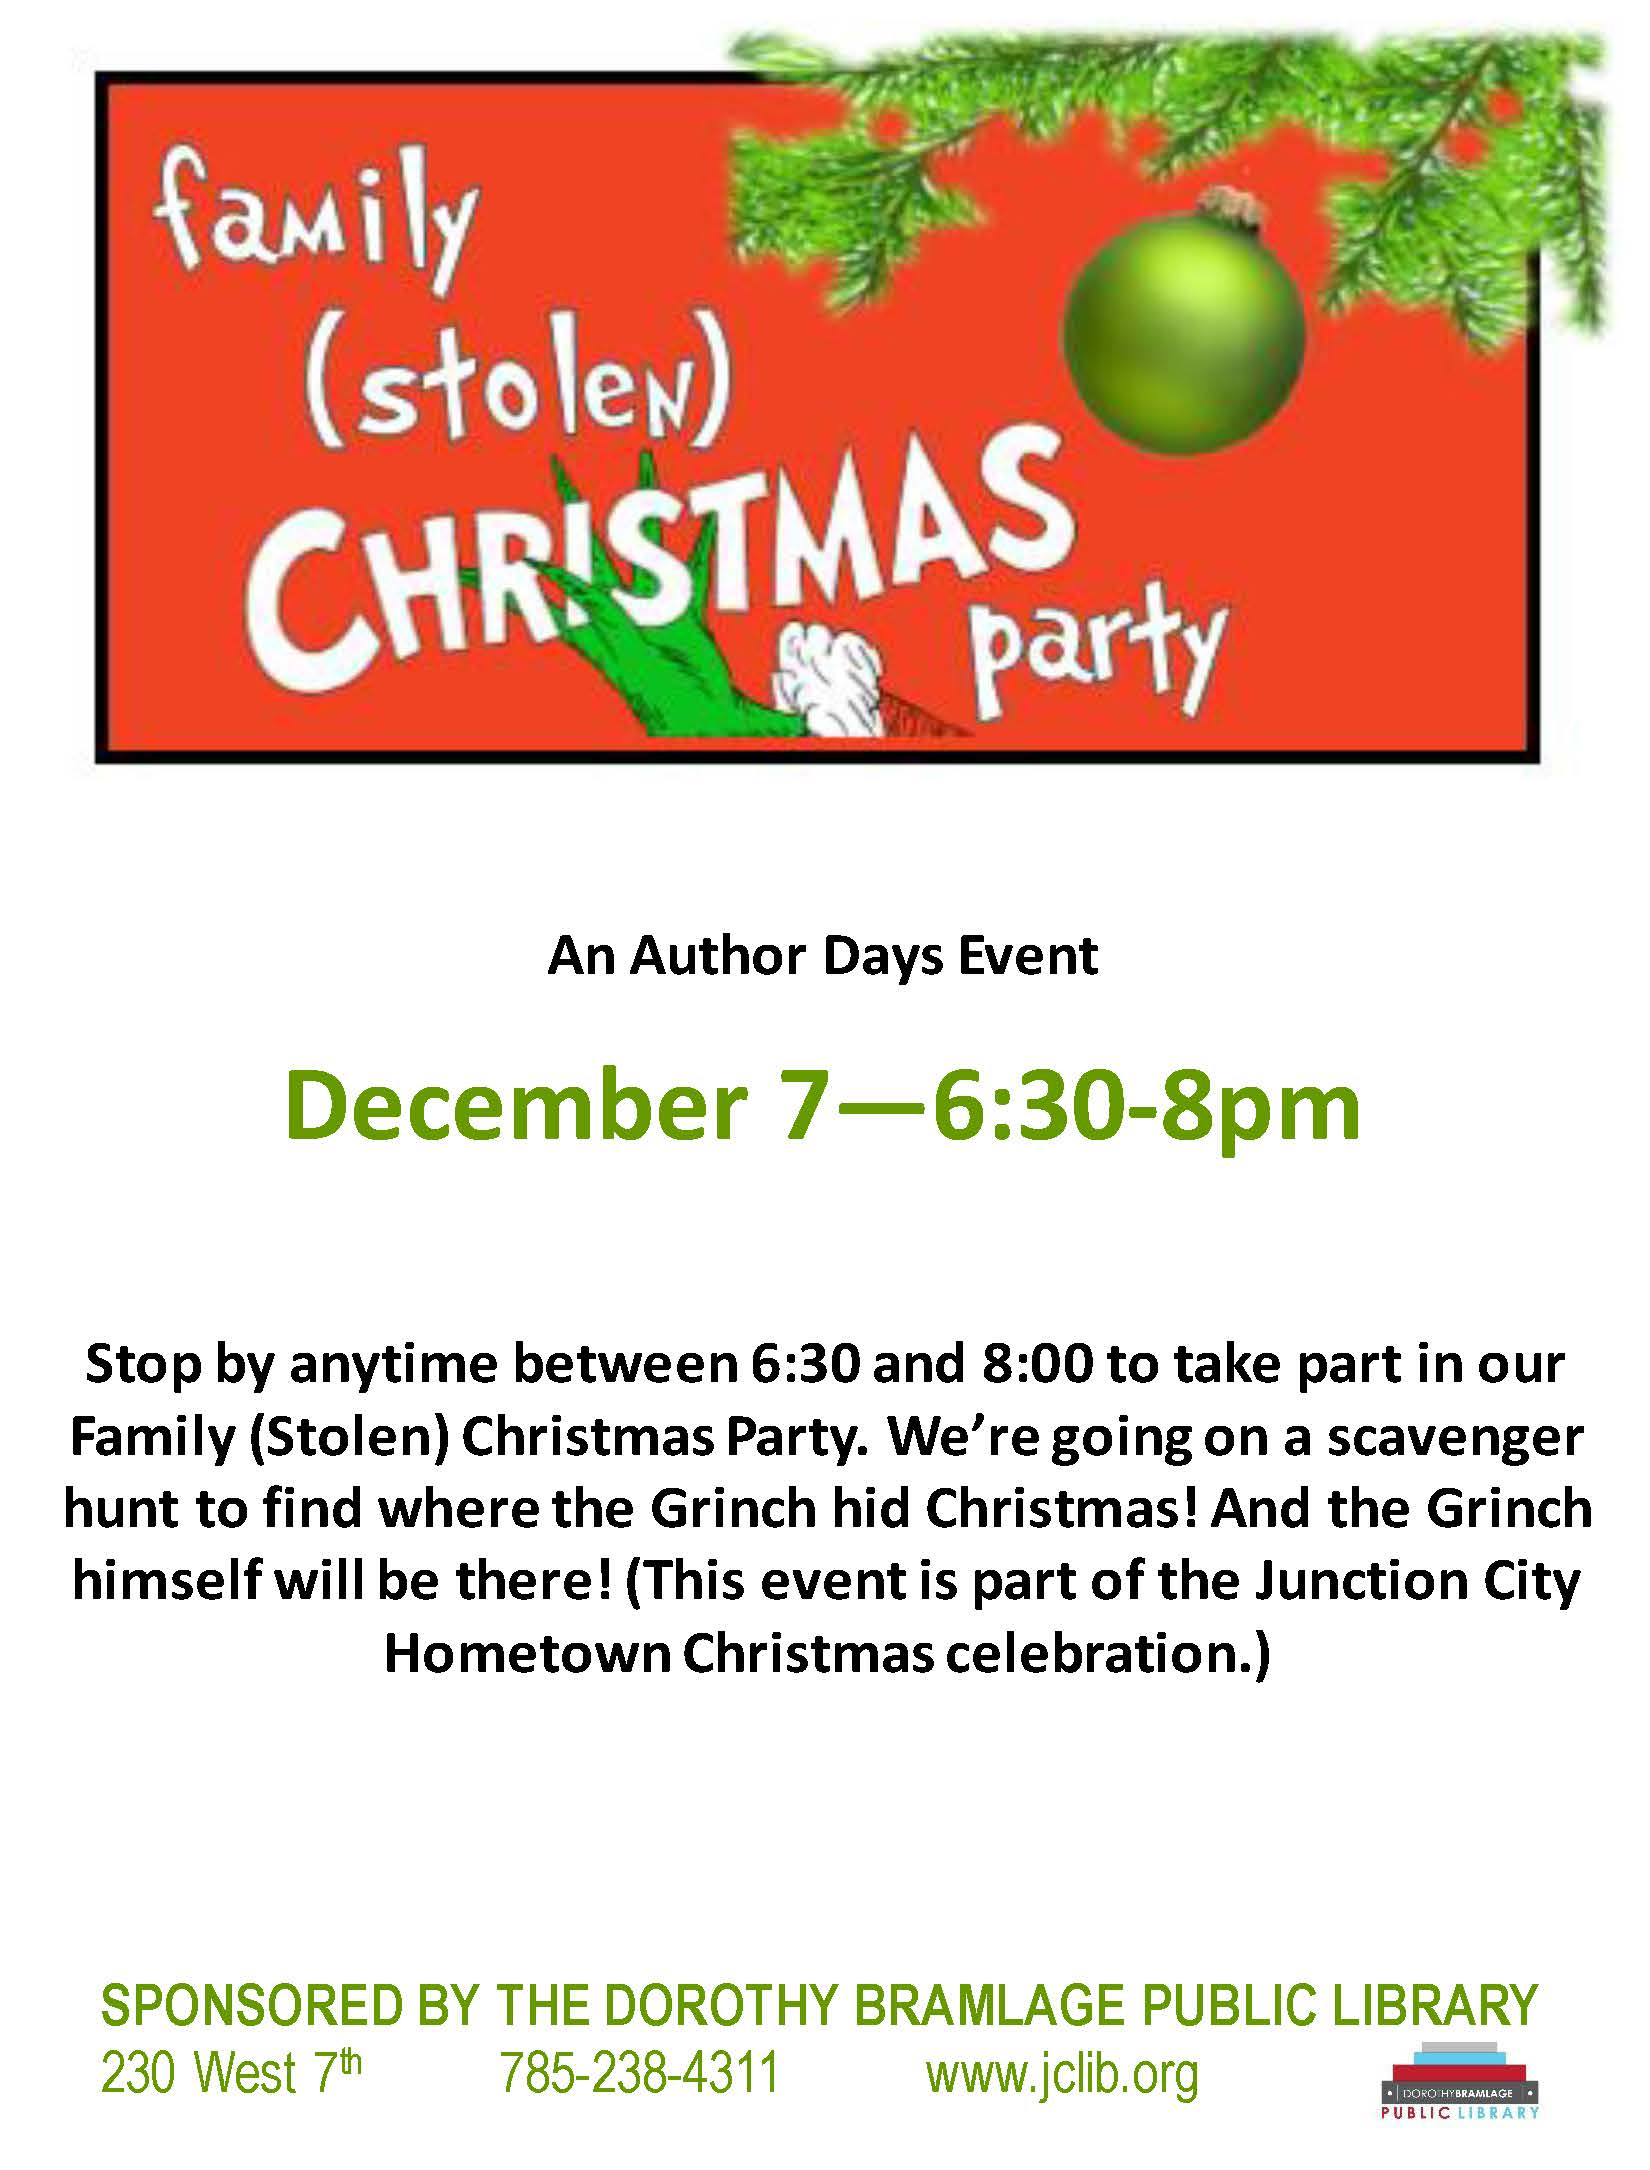 Flyer for A Family Stolen Christmas Party. All information is above.